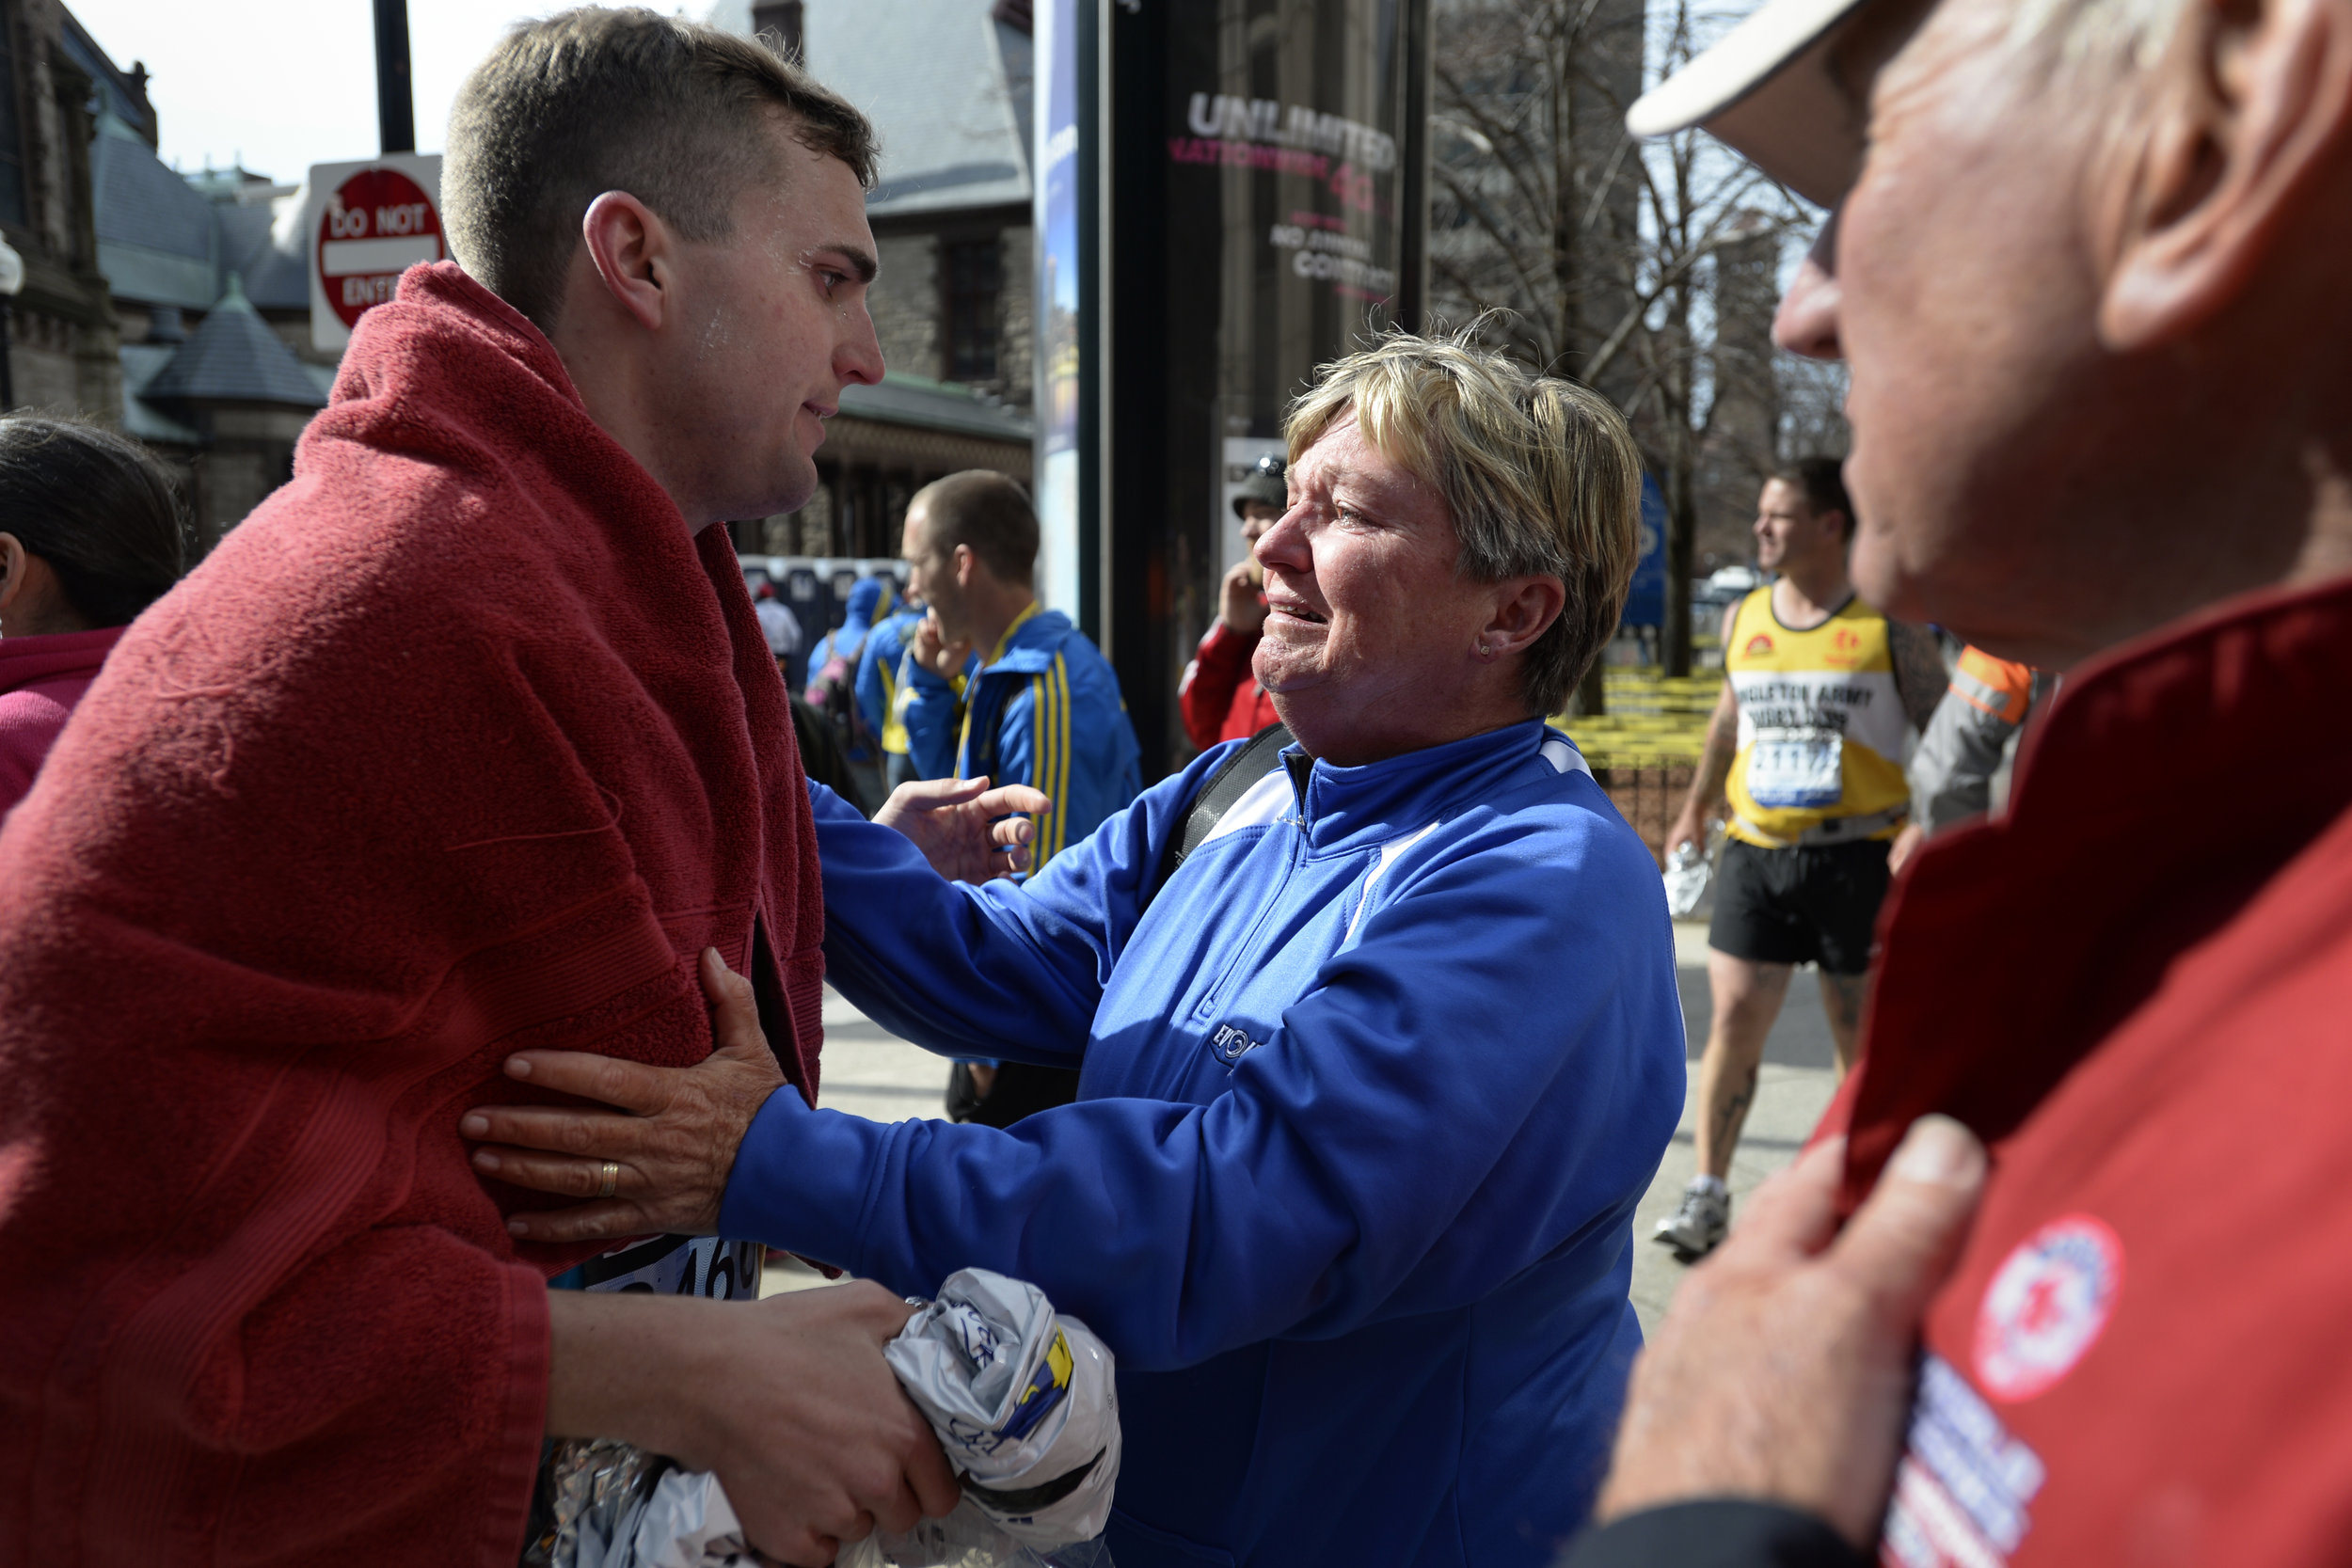 Karen Terry, right, is reunited with Sean Terry after two bombs exploded near the finish line of the Boston Marathon on April 15, 2013.